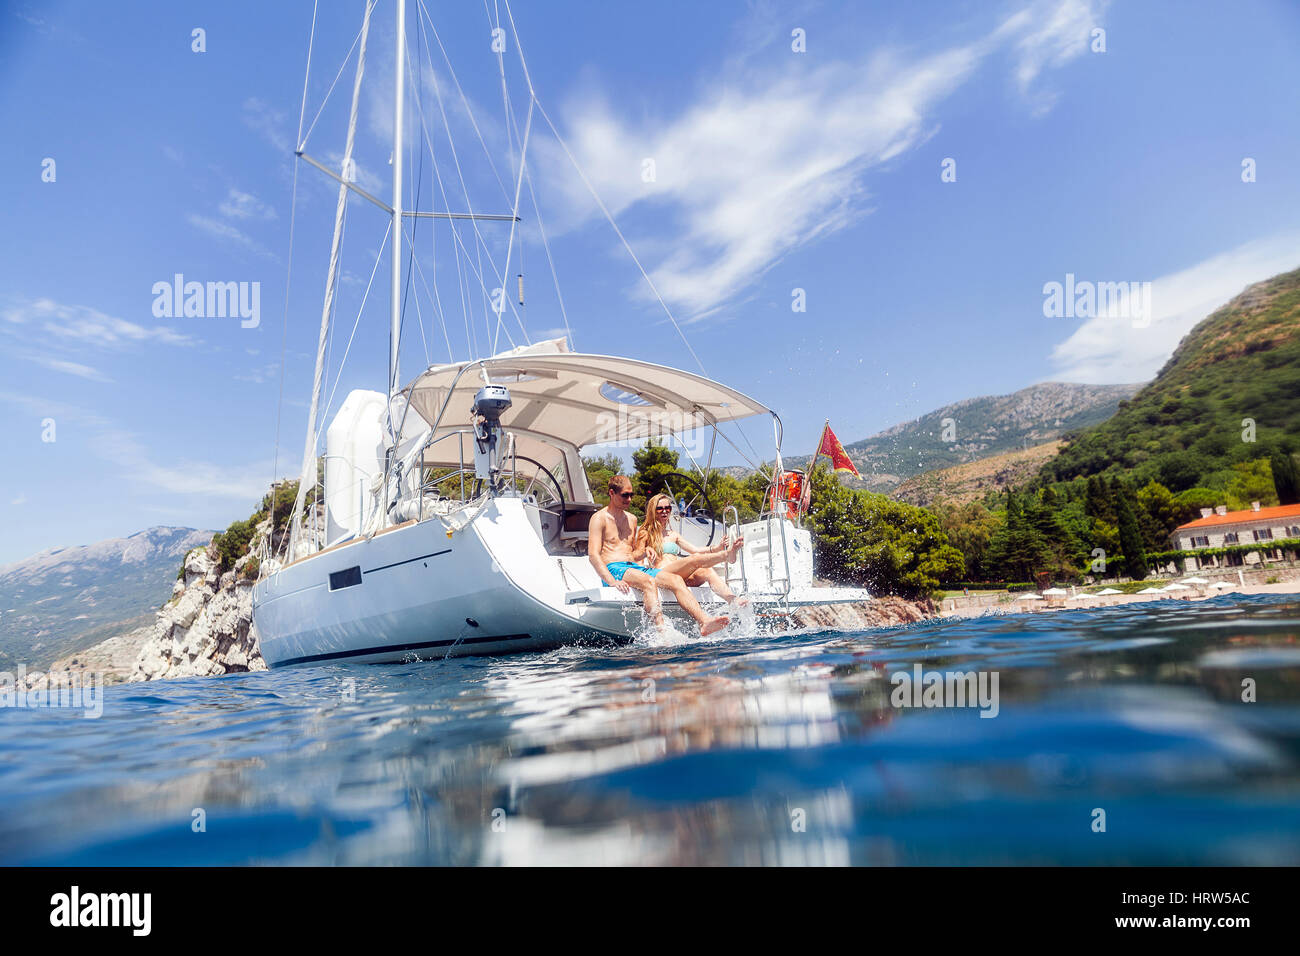 couple yacht honeymoon sailing luxury cruise. View from the water - Stock Image